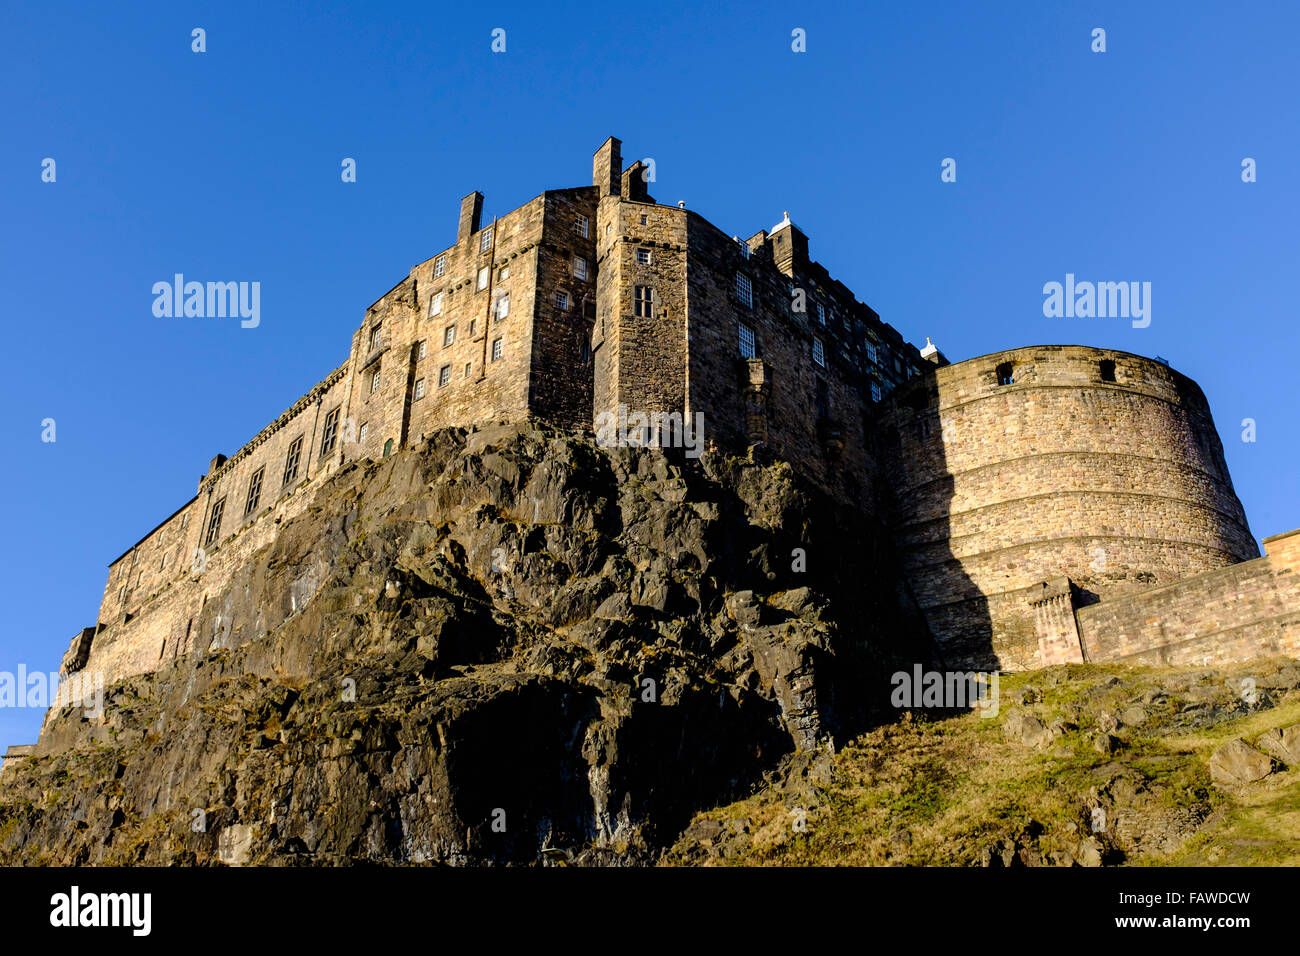 View of Edinburgh Castle on blue sky winer day in Scotland - Stock Image